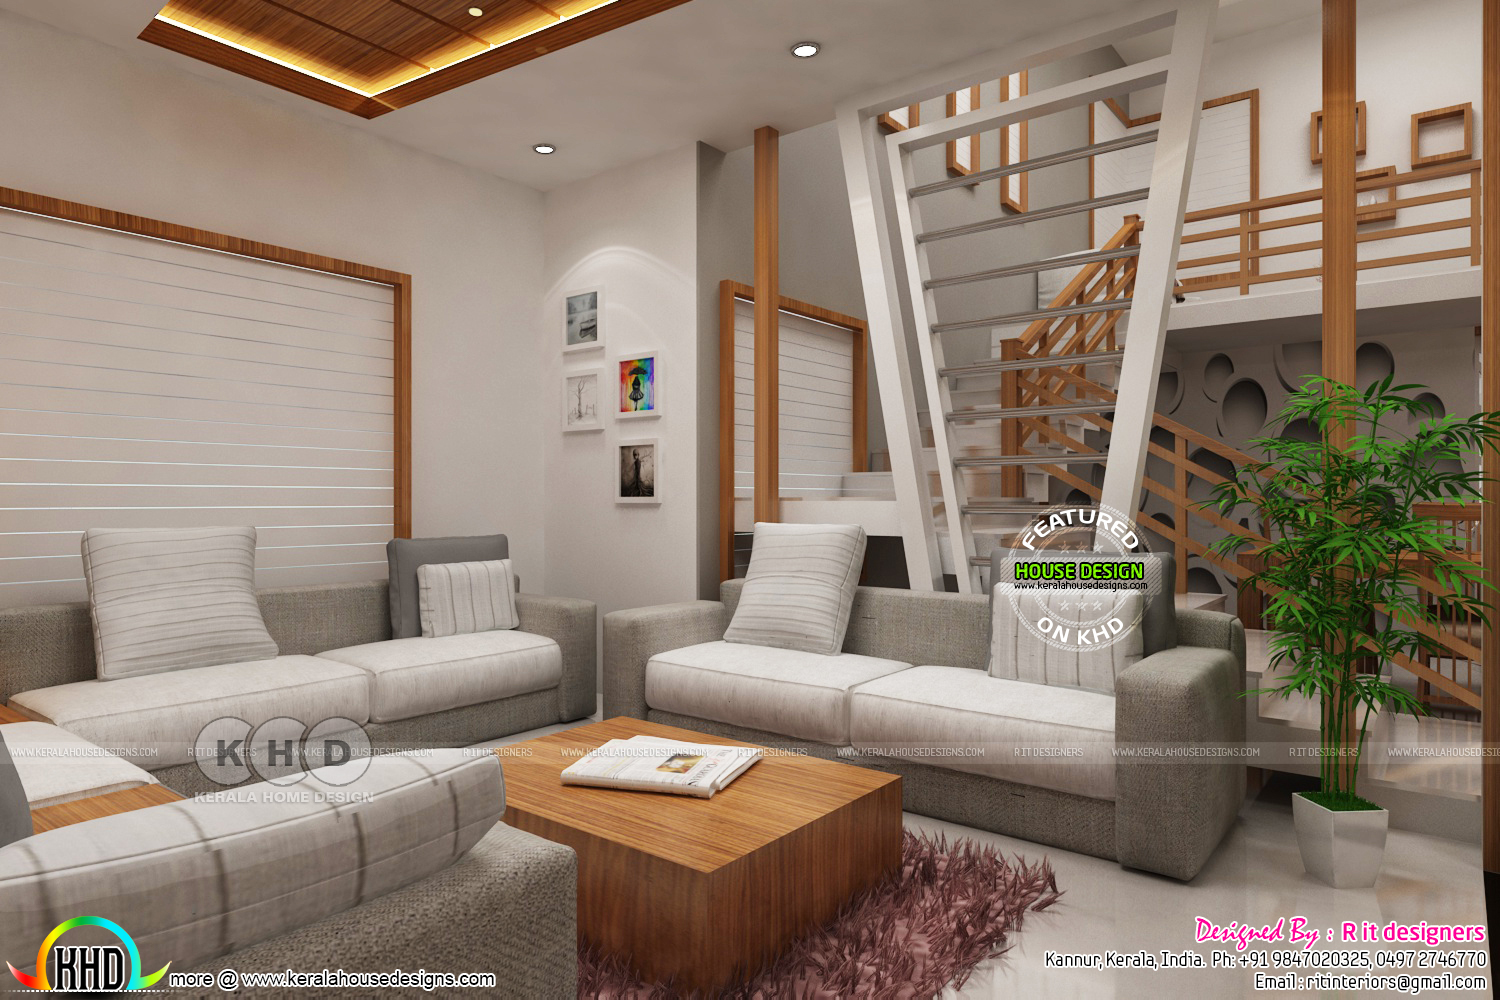 Kerala interiors designs - Living - Kerala home design and floor